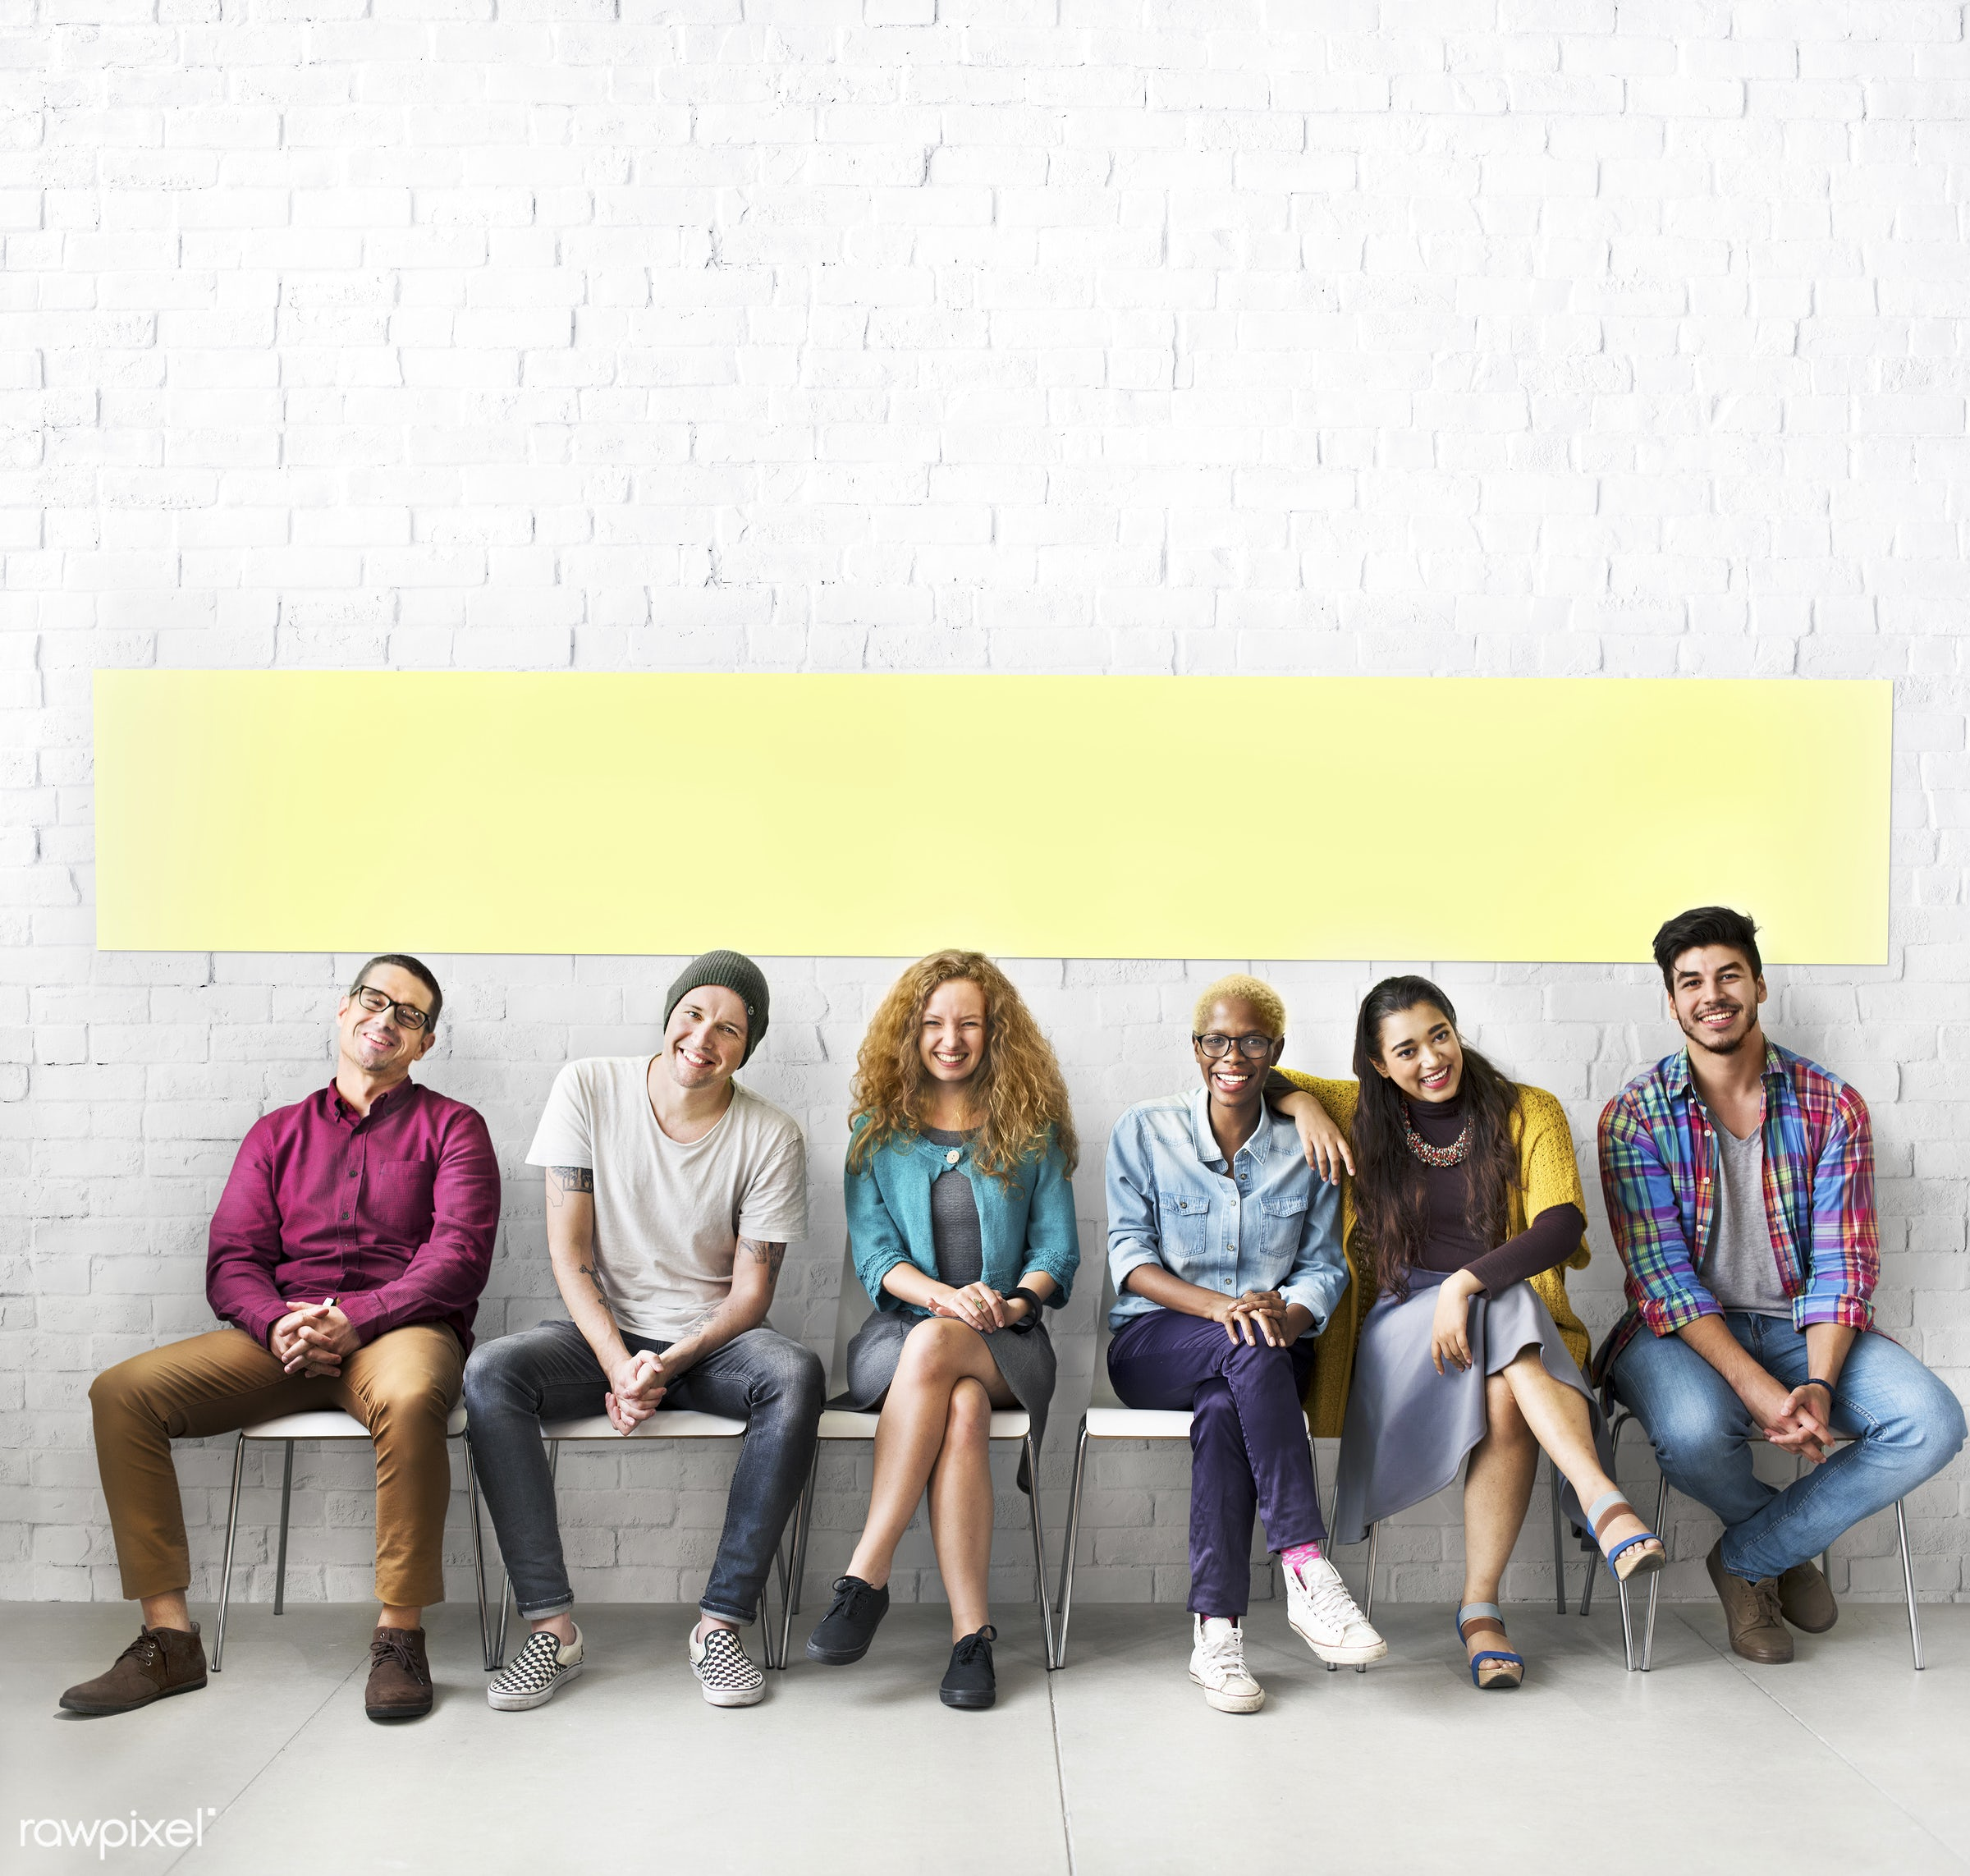 adult, african descent, boys, brick wall, chairs, cheerful, closeness, colleagues, different, diverse, diversity, fashion,...